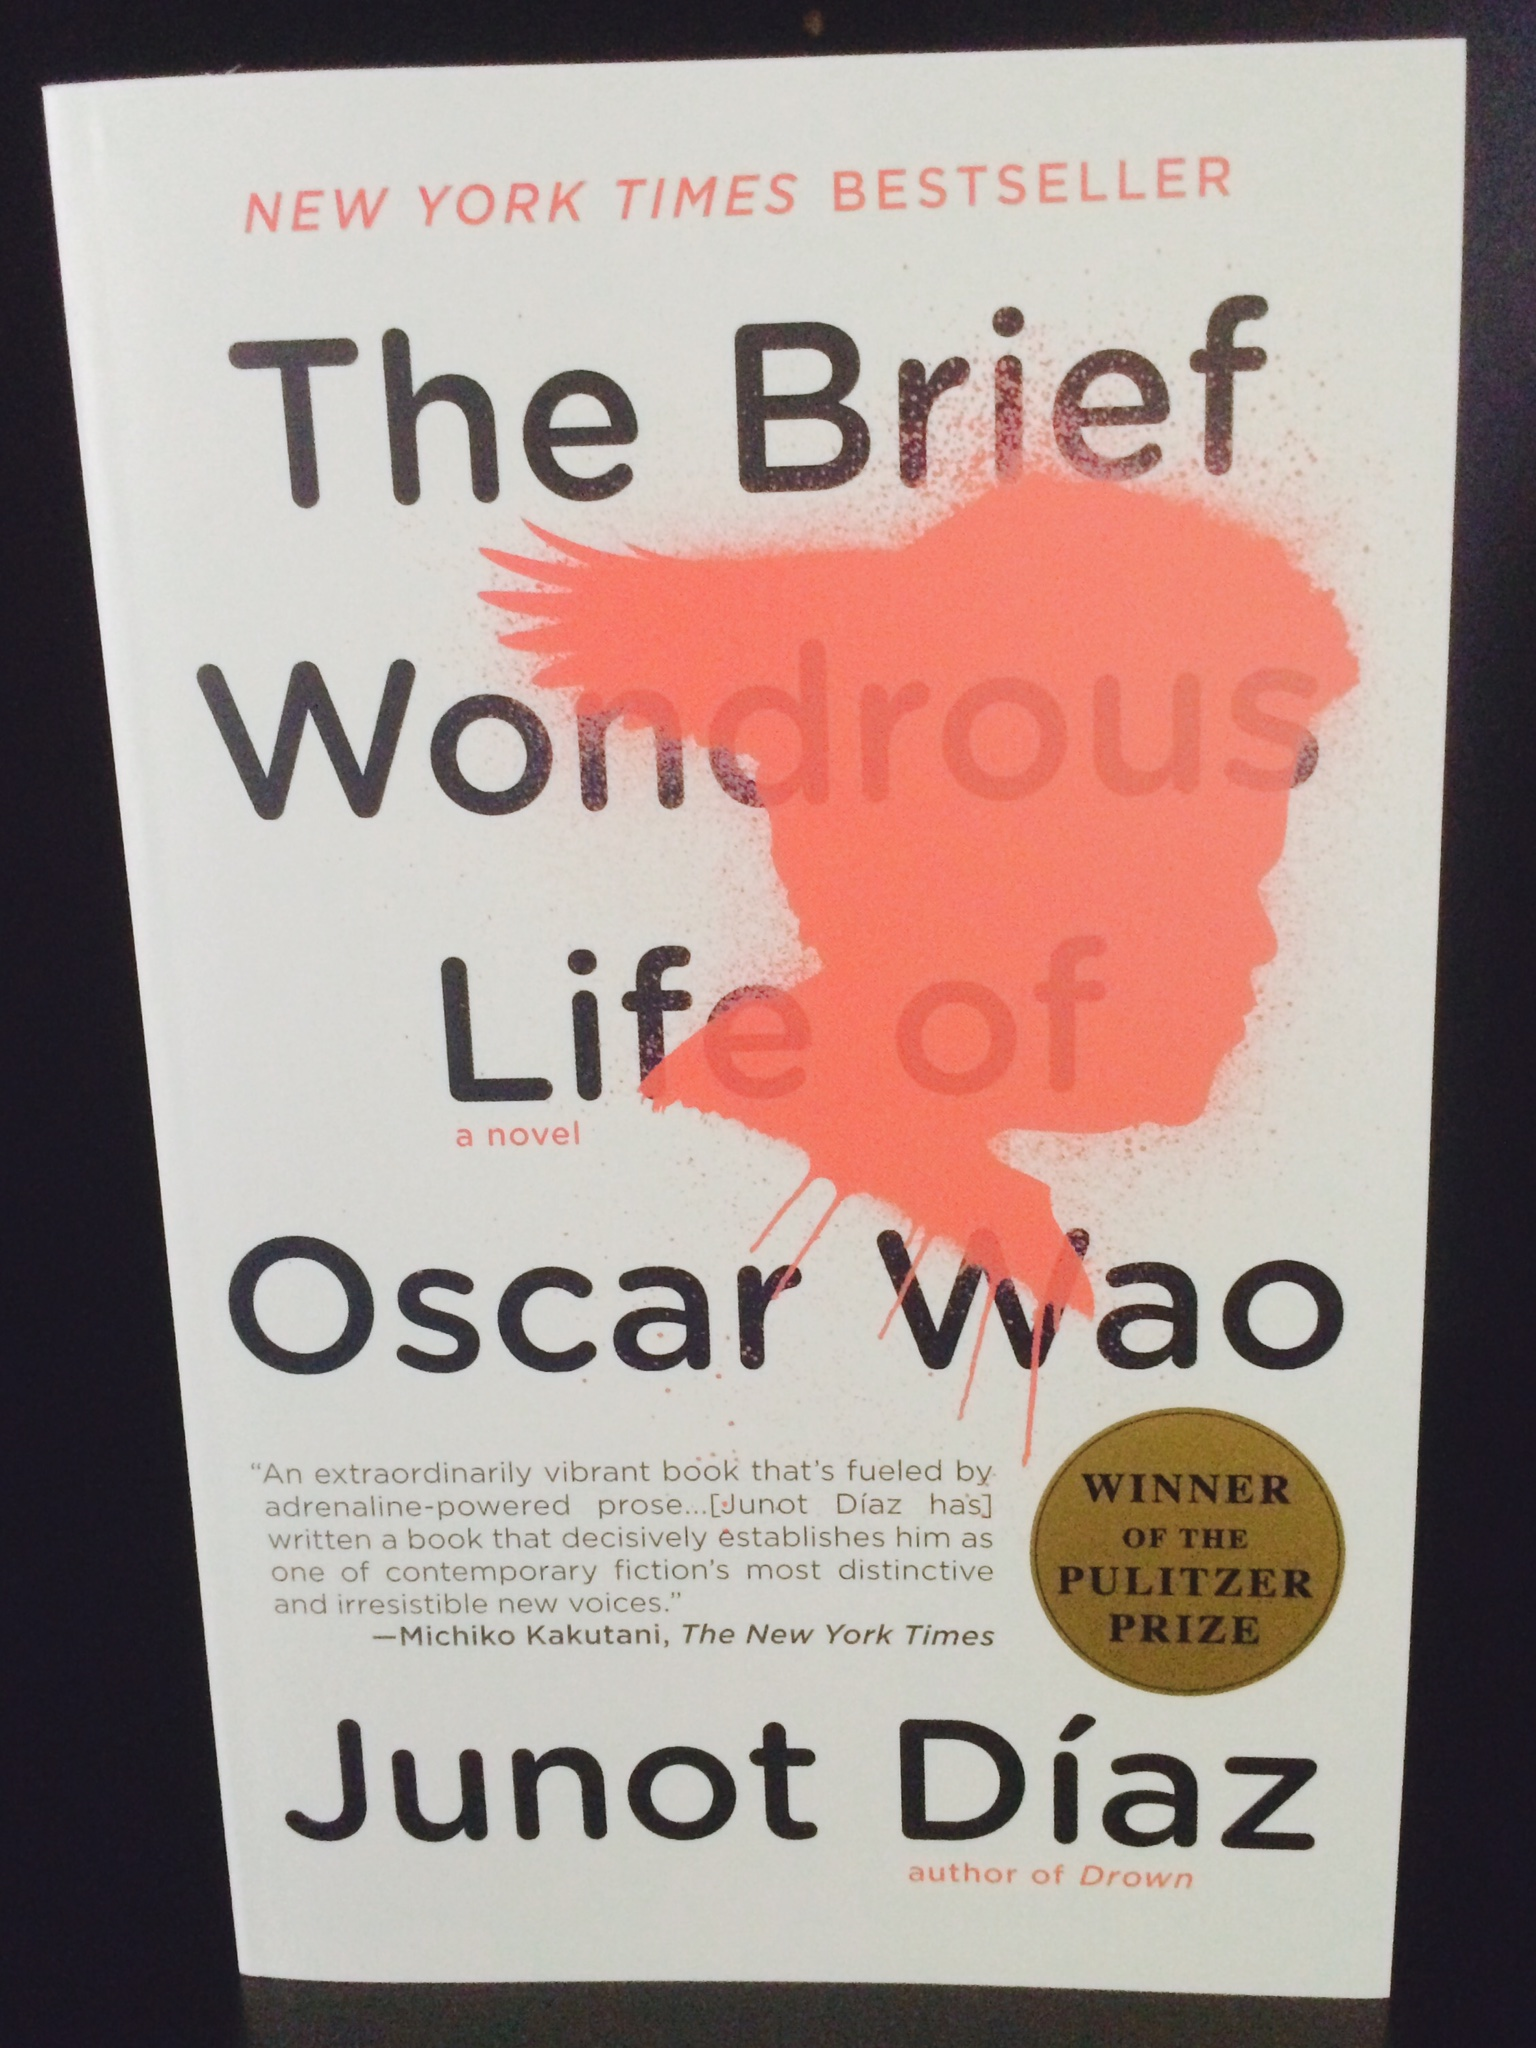 brief life of oscar wao The book starts by introducing yunior, the fictional author of oscar wao's biography, and the curse that has shaped the events of oscar's life yunior describes oscar's childhood as a dominican american boy in paterson, new jersey, and the struggles that oscar faces as he fails to fit in with the latino community or get a girlfriend.